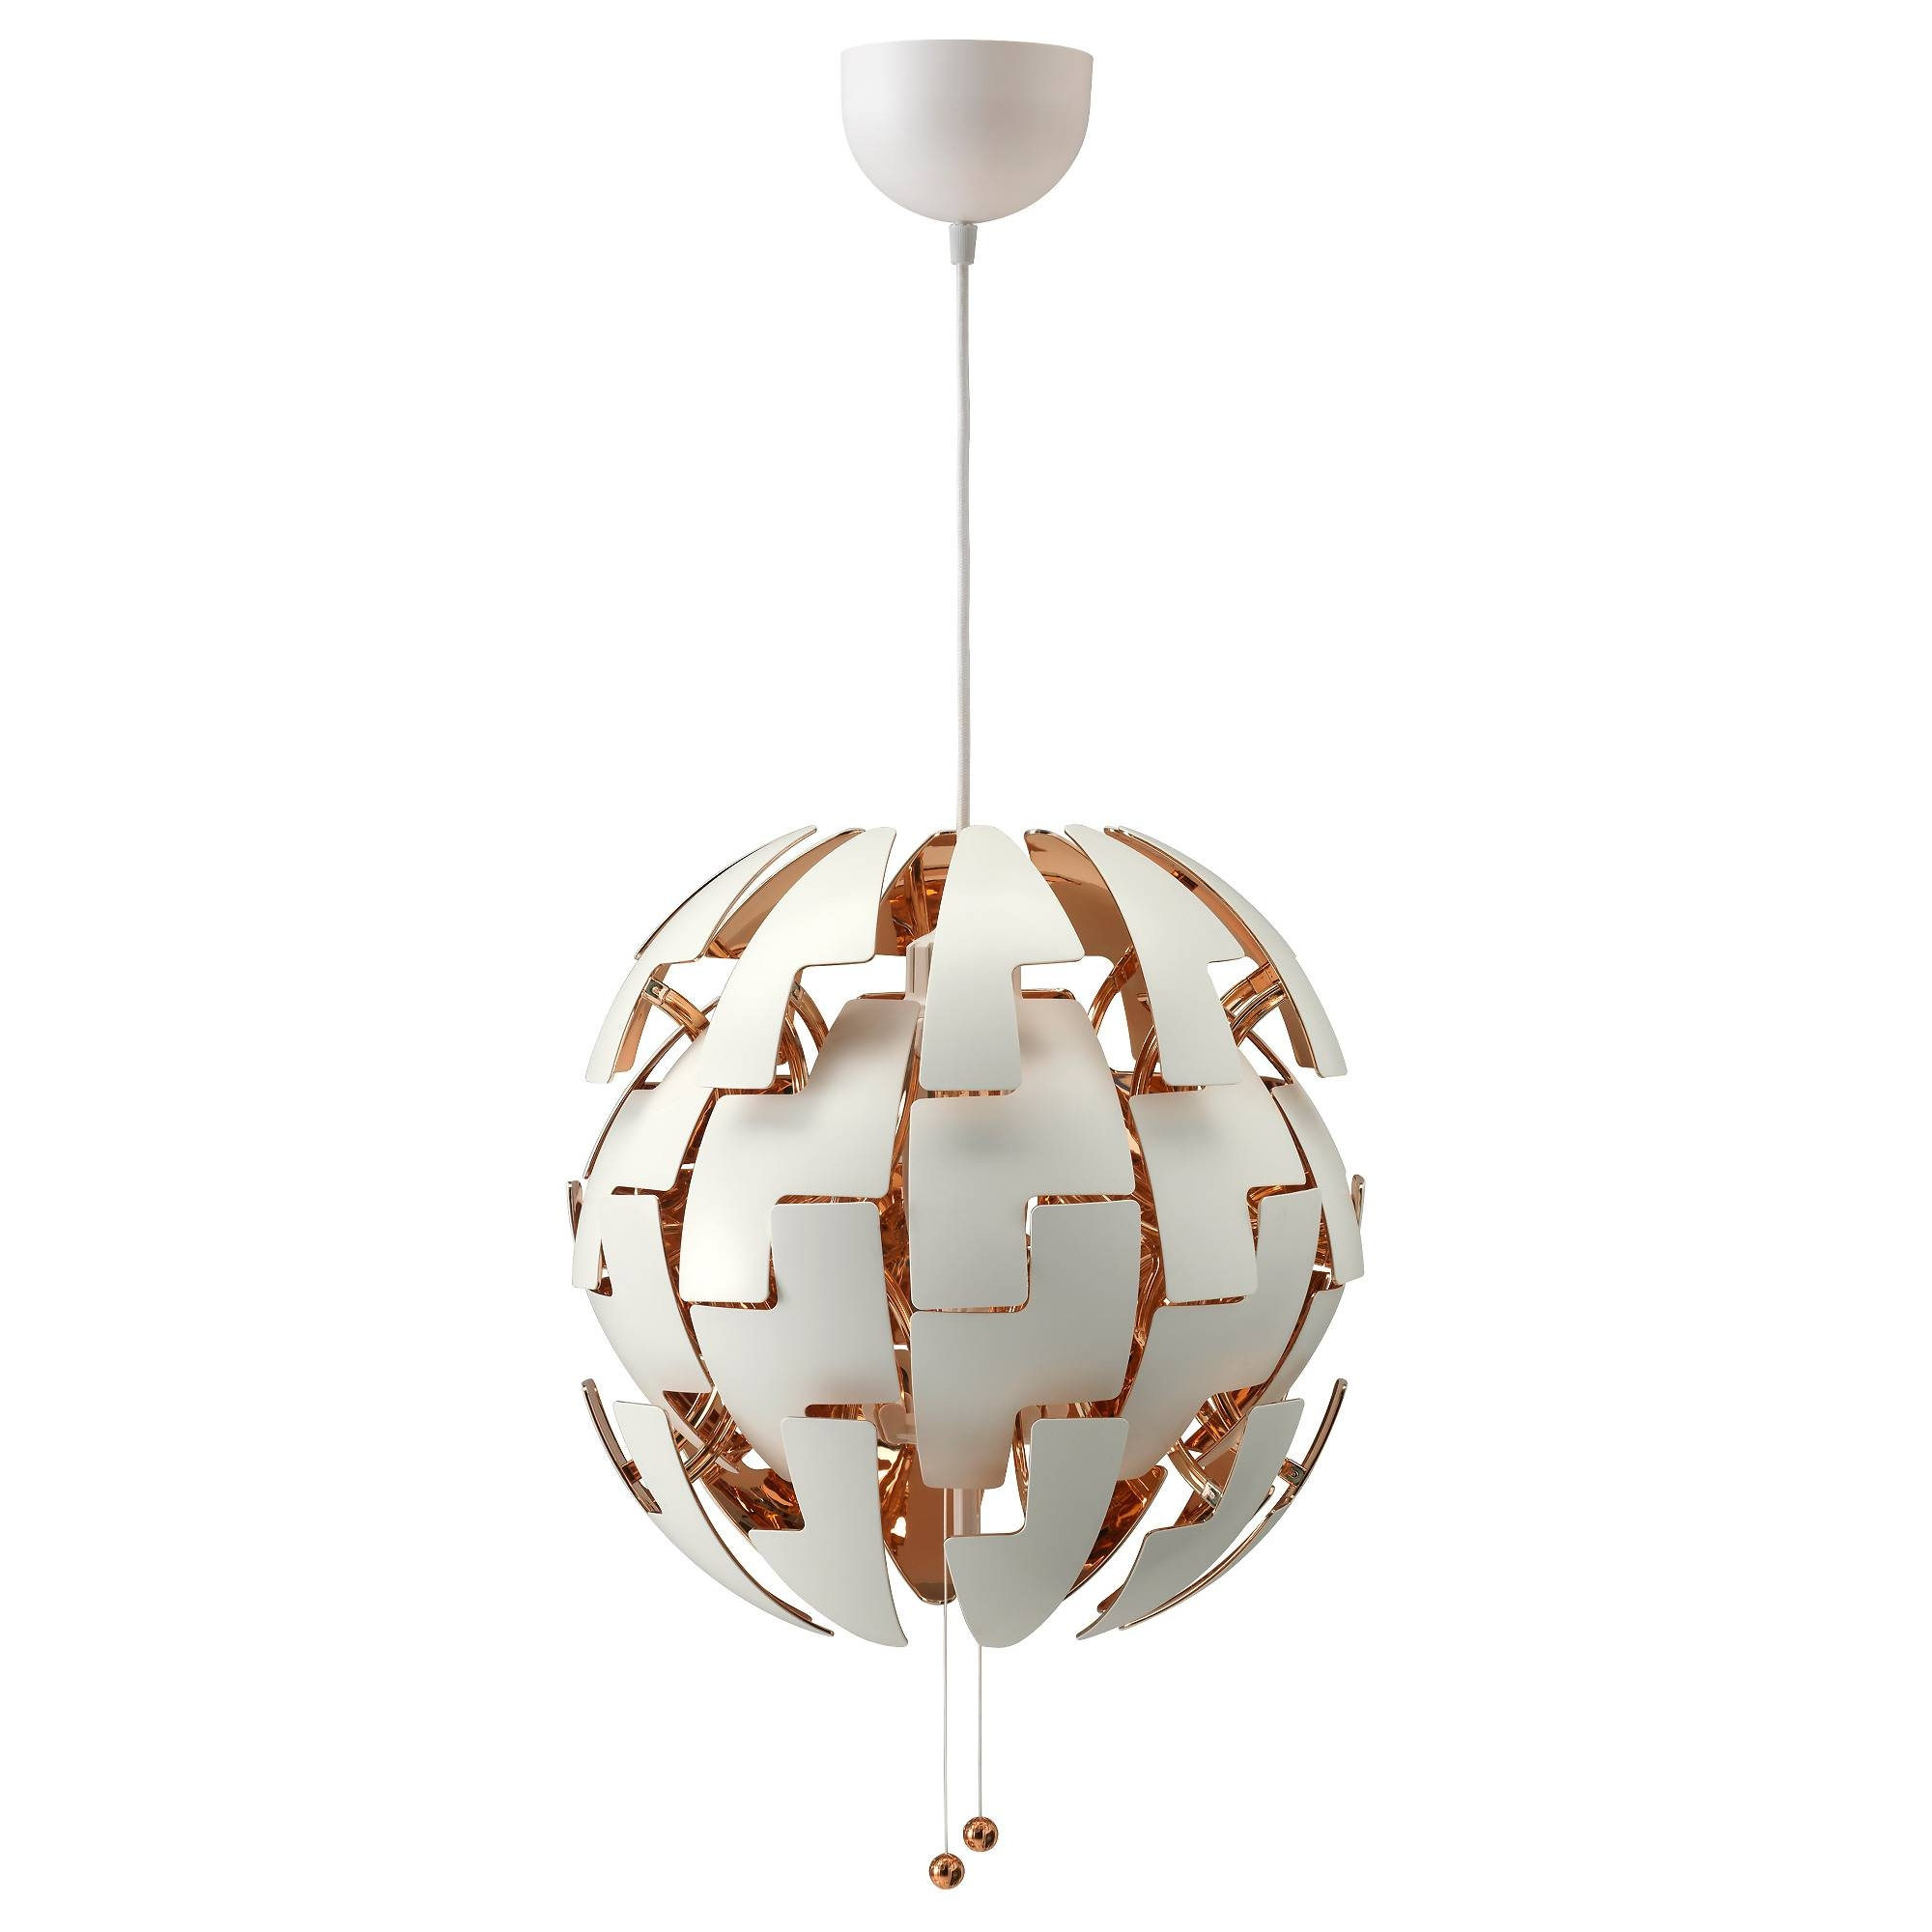 Ikea Ps 2014 Pendant Lamp White/copper-Colour - Ikea for Ikea Globe Pendant Lights (Image 7 of 15)